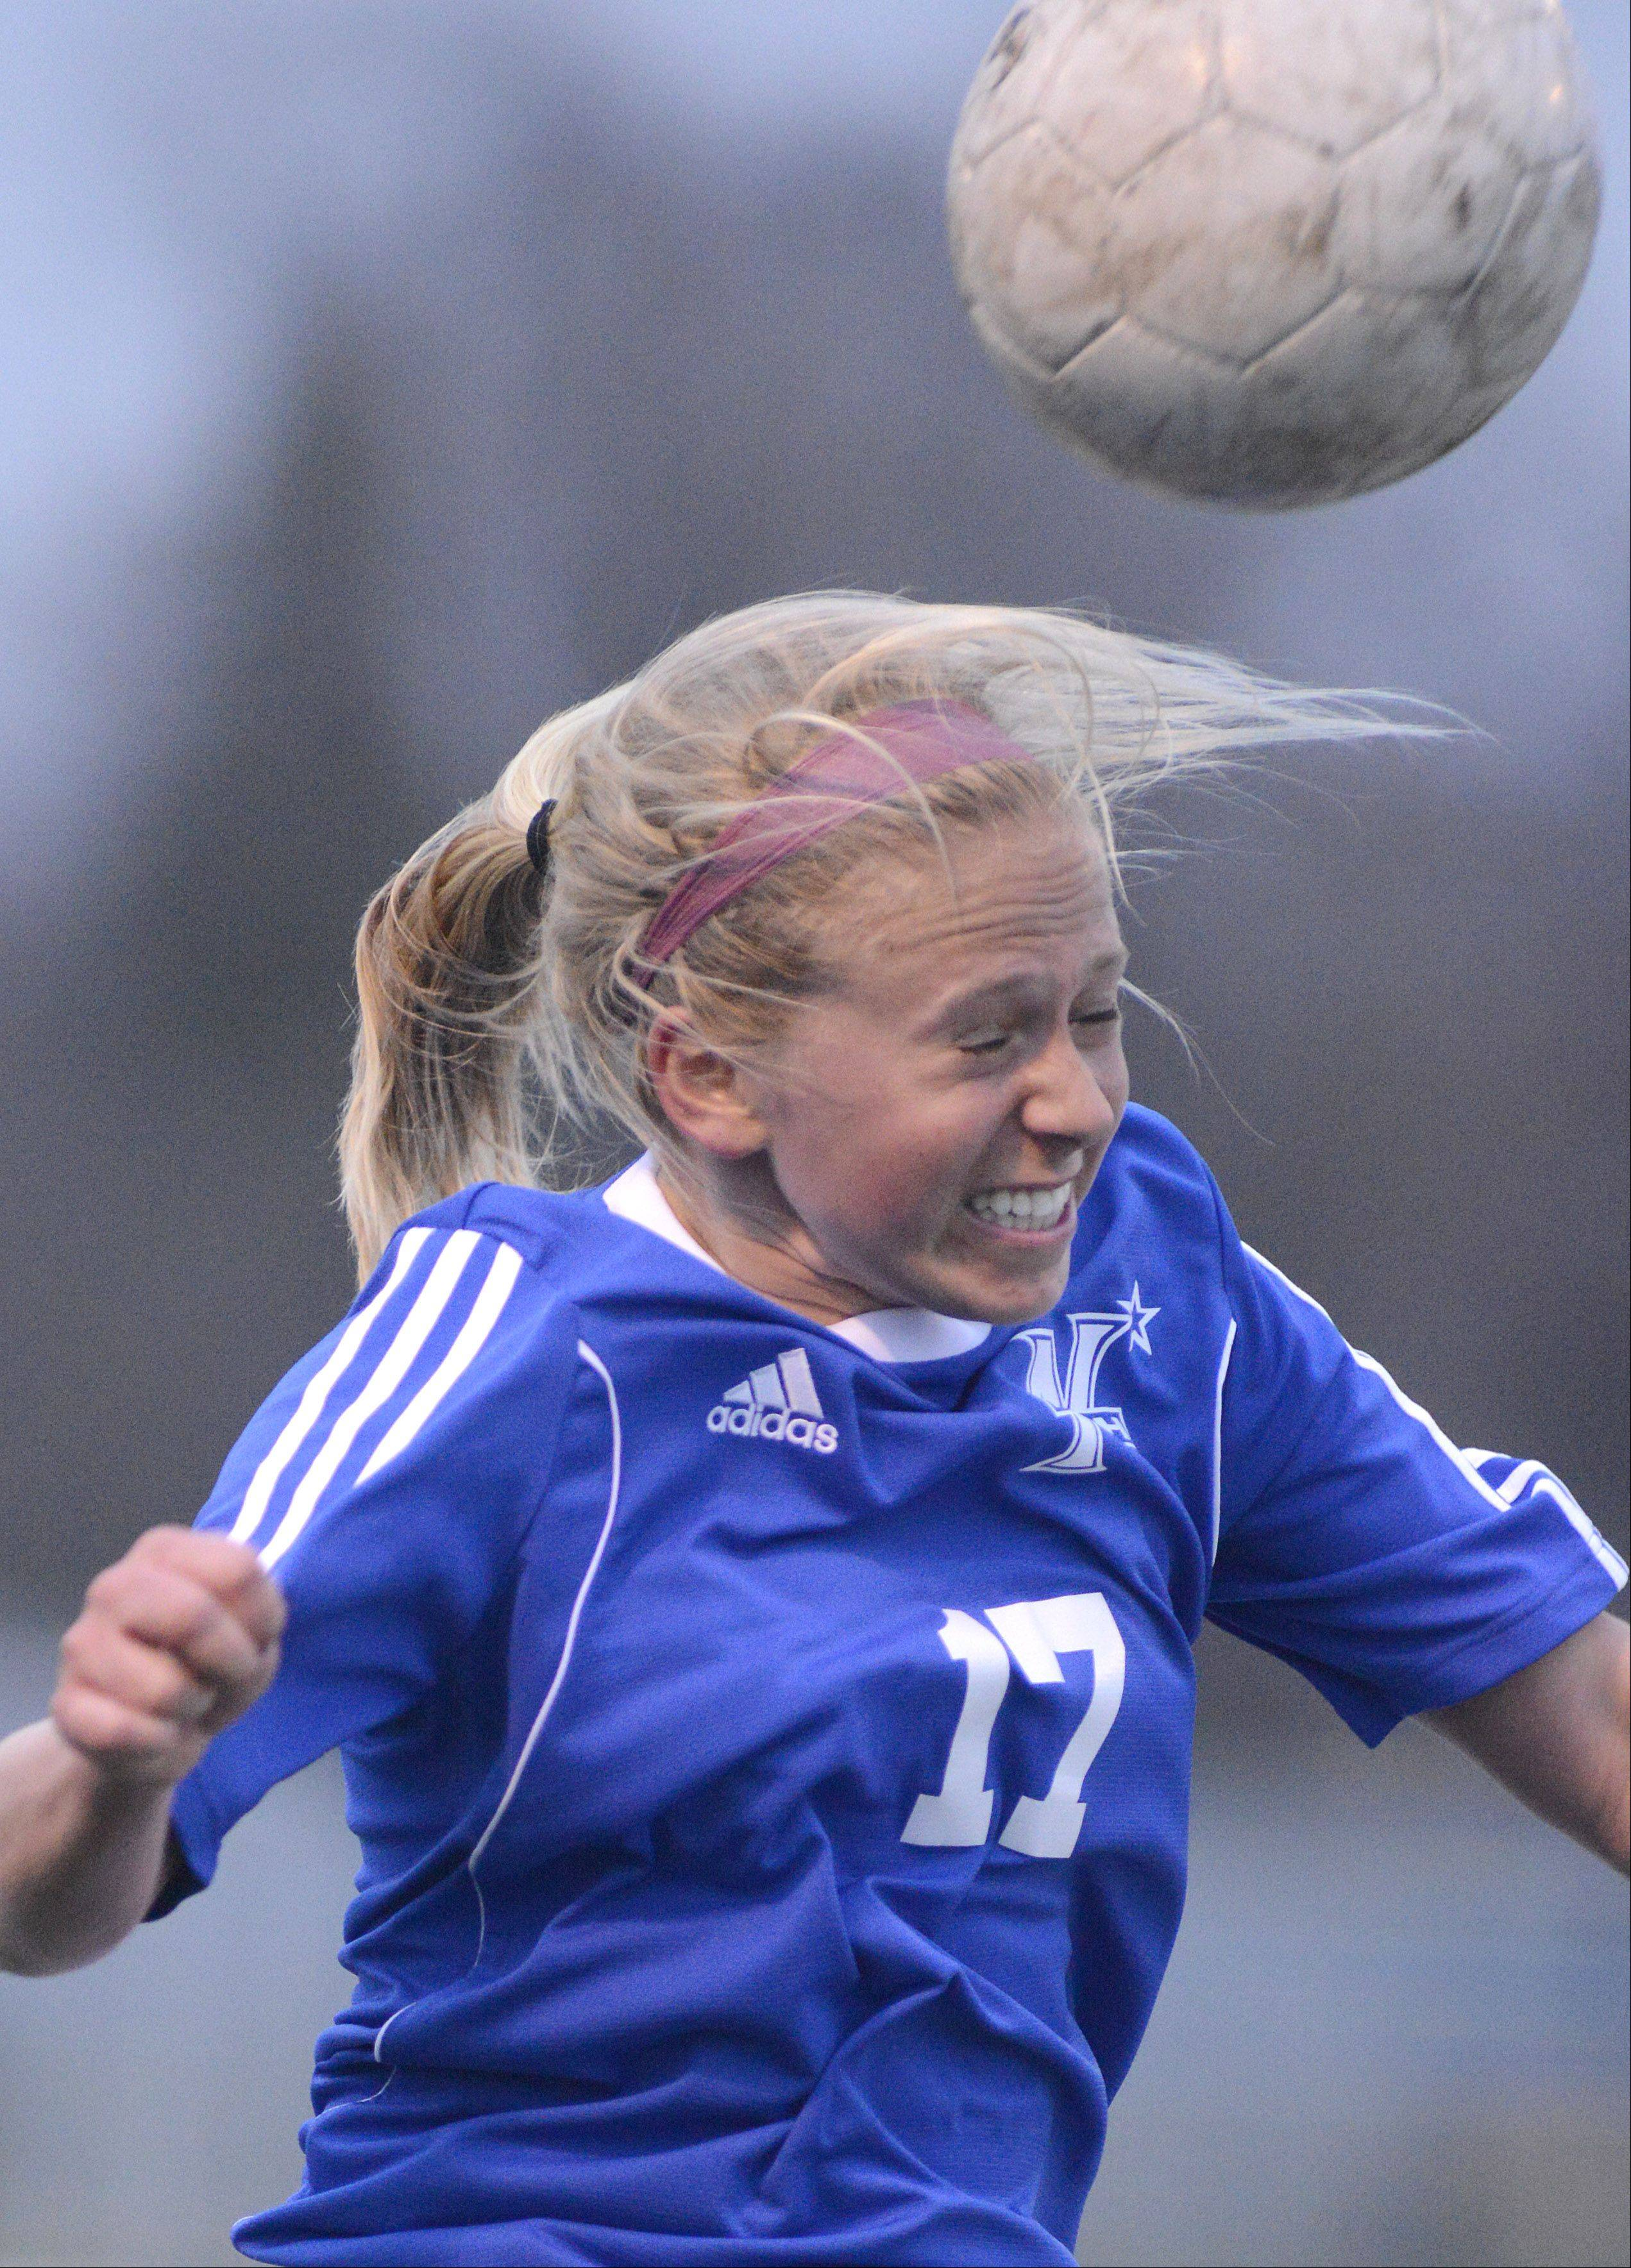 St. Charles North's Kelly Manski heads the ball during Tuesday's game.